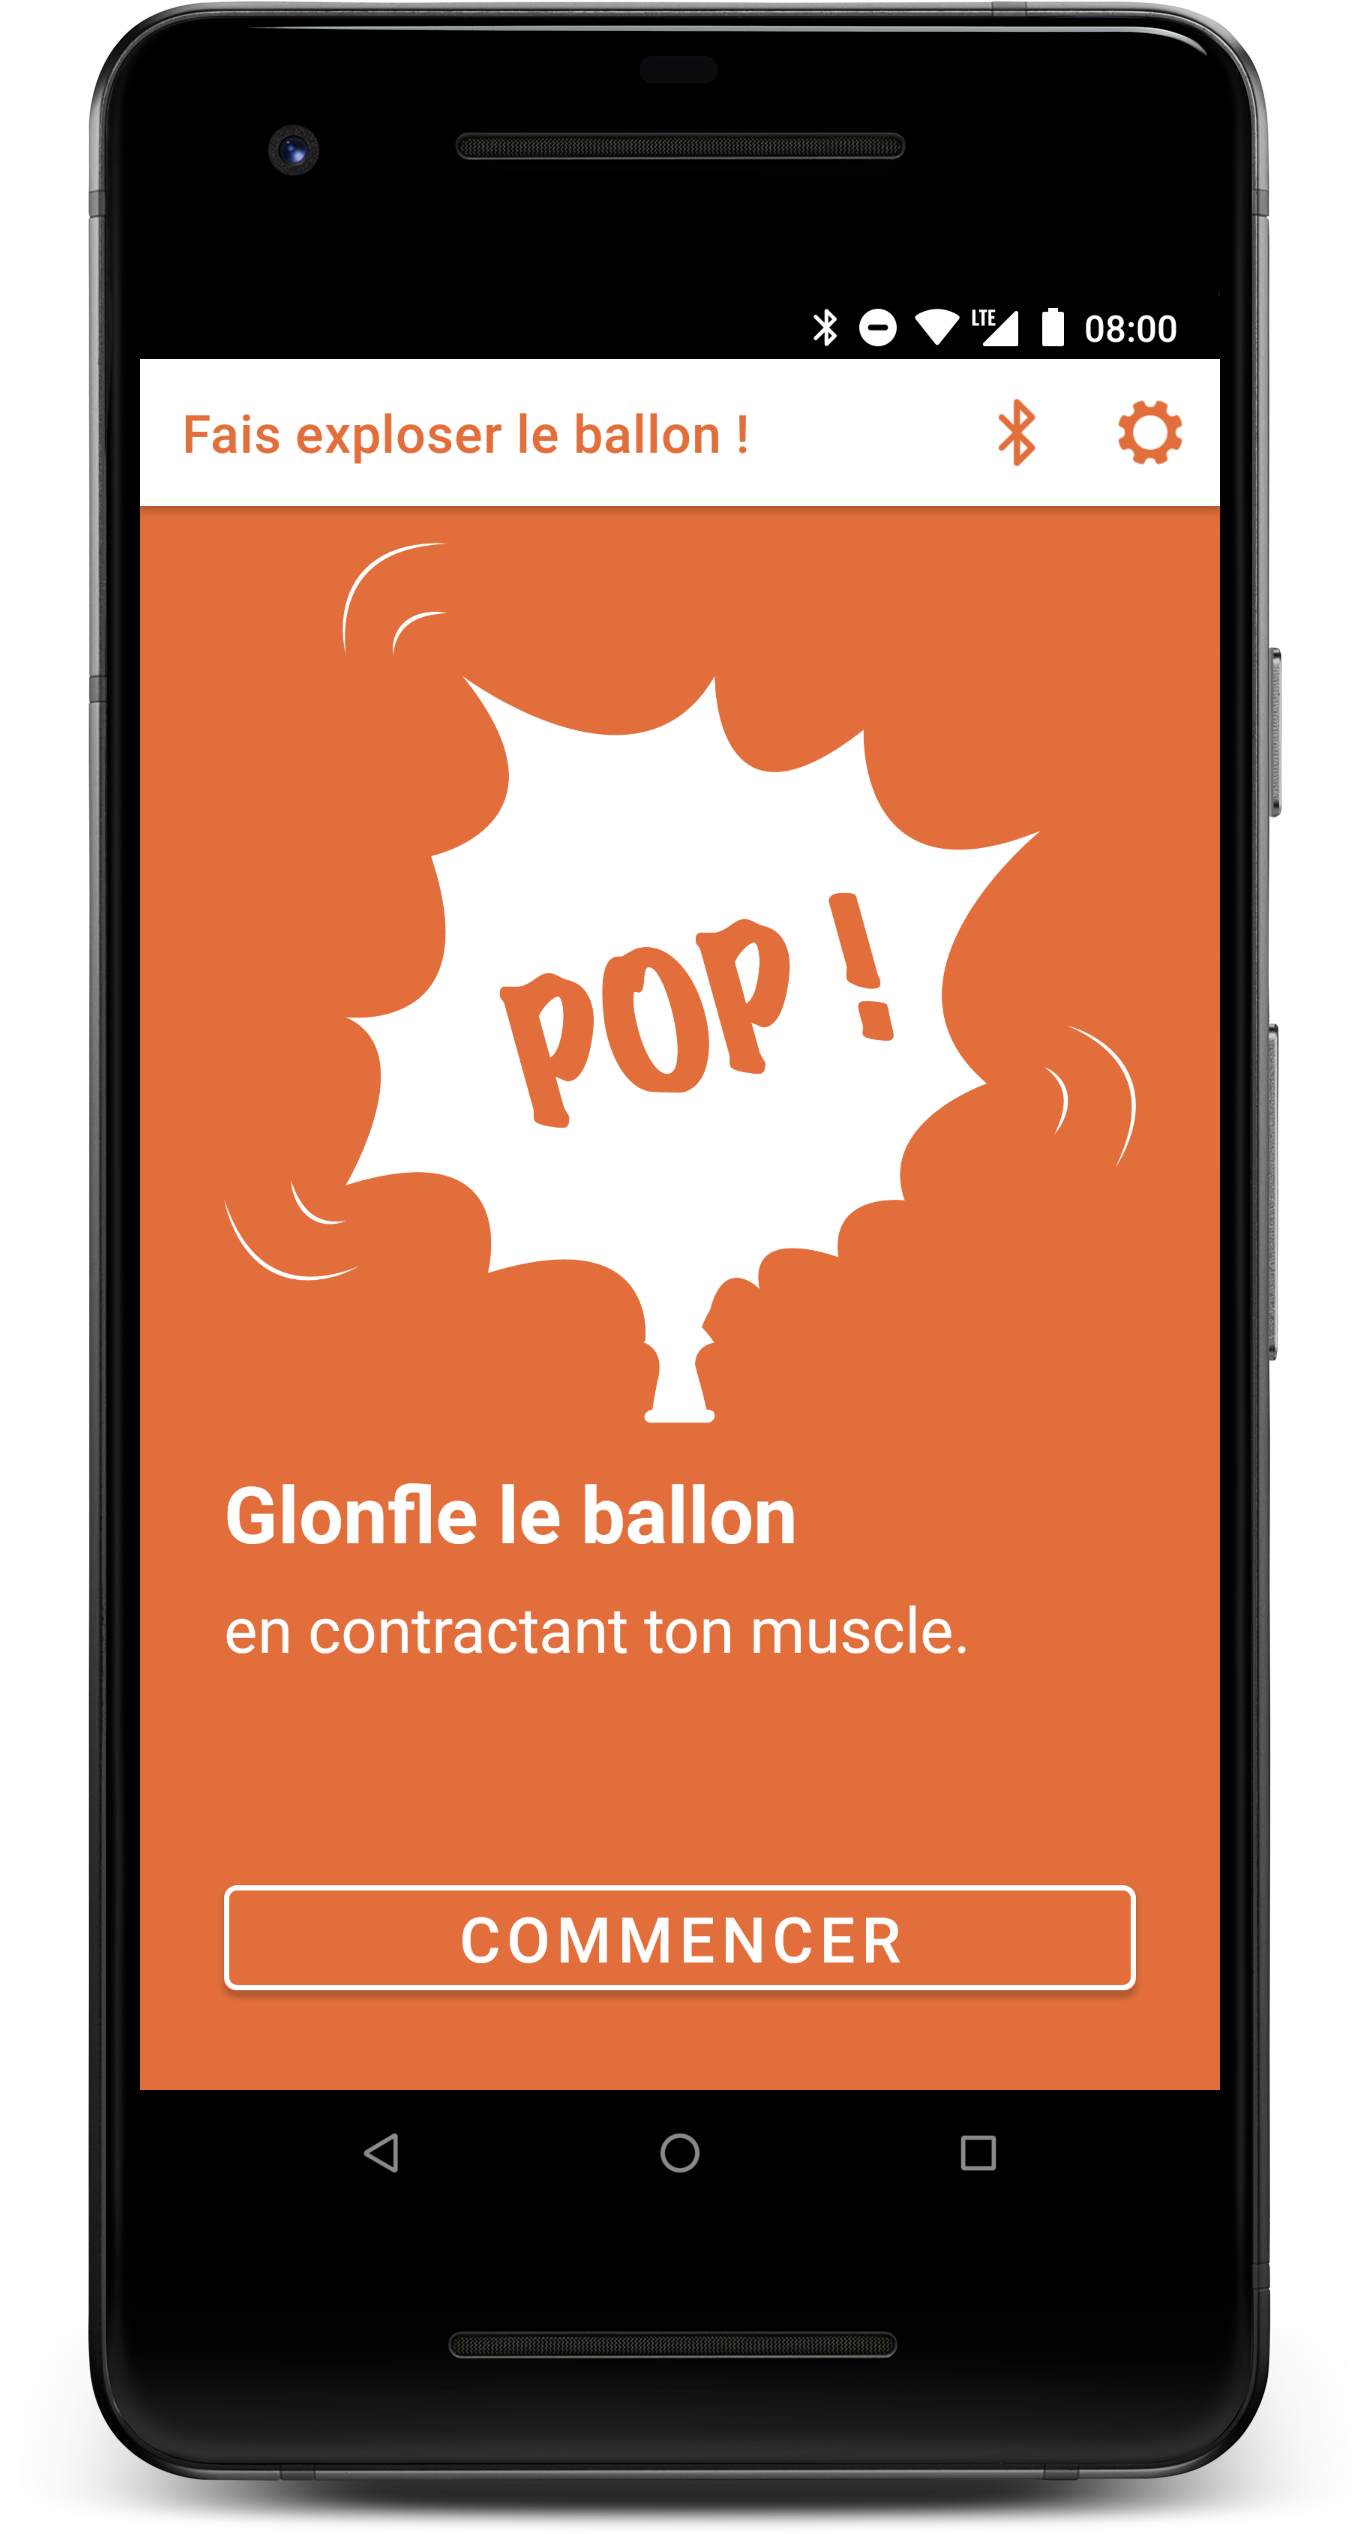 The balloon game (version 0.6.0 of the app)